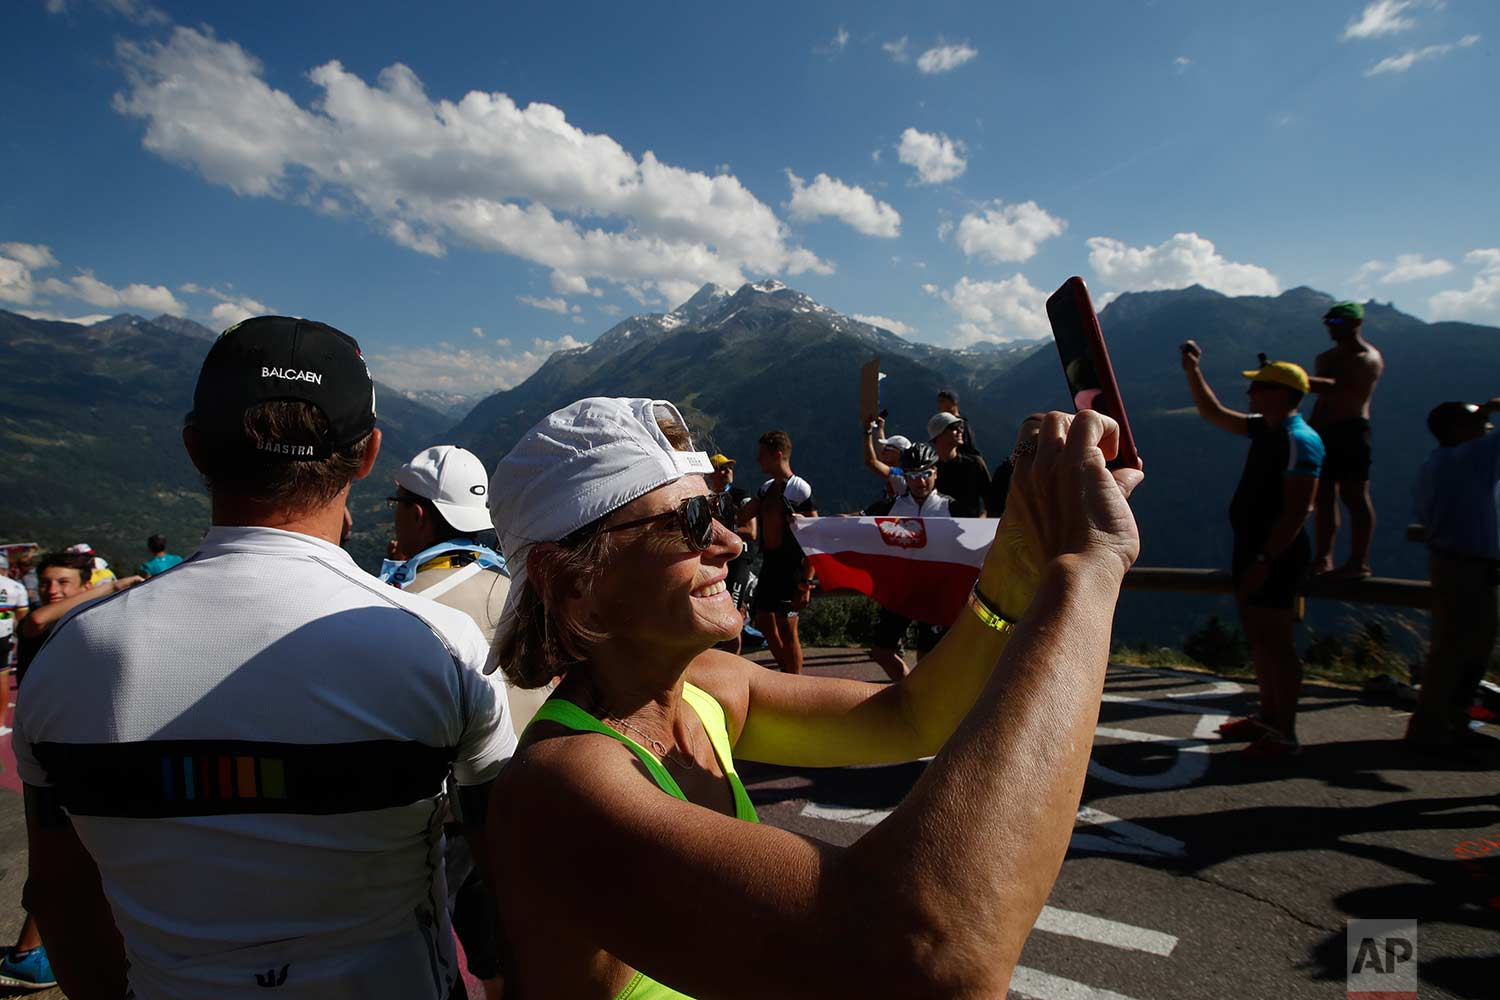 Fans wait in the French Alps for the riders too pass during the eleventh stage of the Tour de France cycling race over 108.5 kilometers (67.4 miles) with start in Albertville and finish in La Rosiere Espace San Bernardo, France. (AP Photo/Christophe Ena )